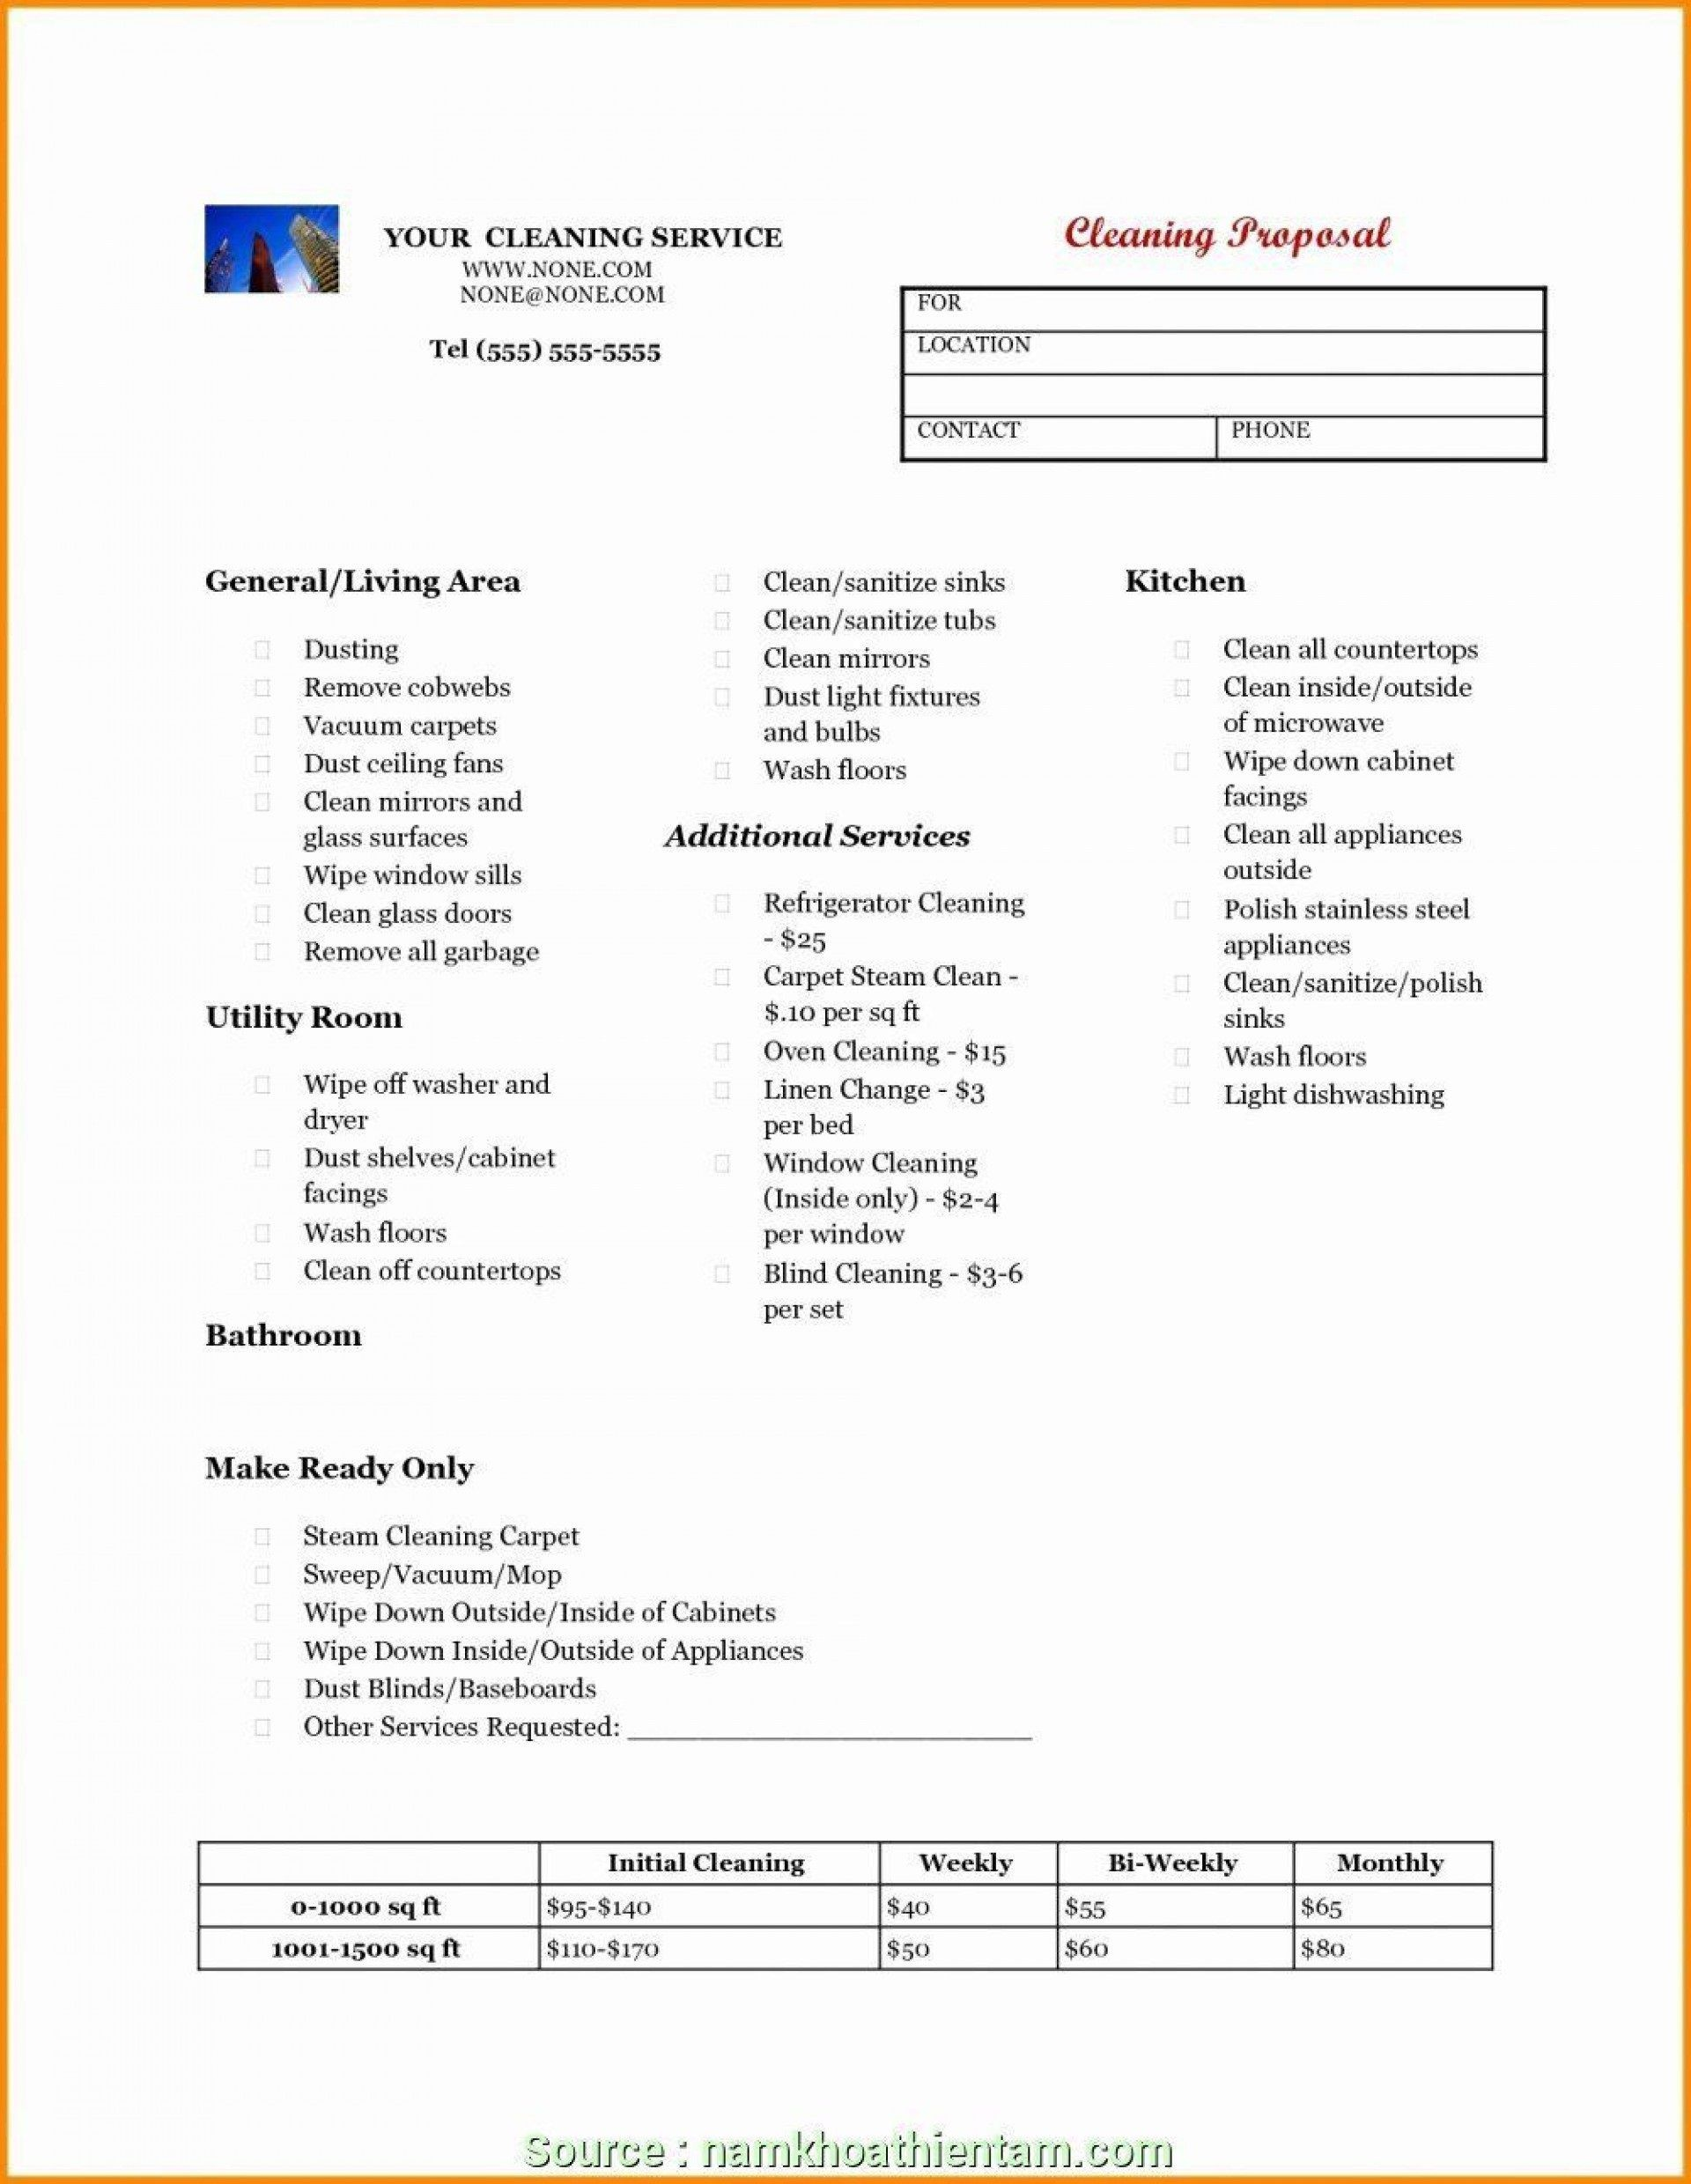 009 Formidable Free Cleaning Proposal Template Highest Quality  Office Bid Service1920